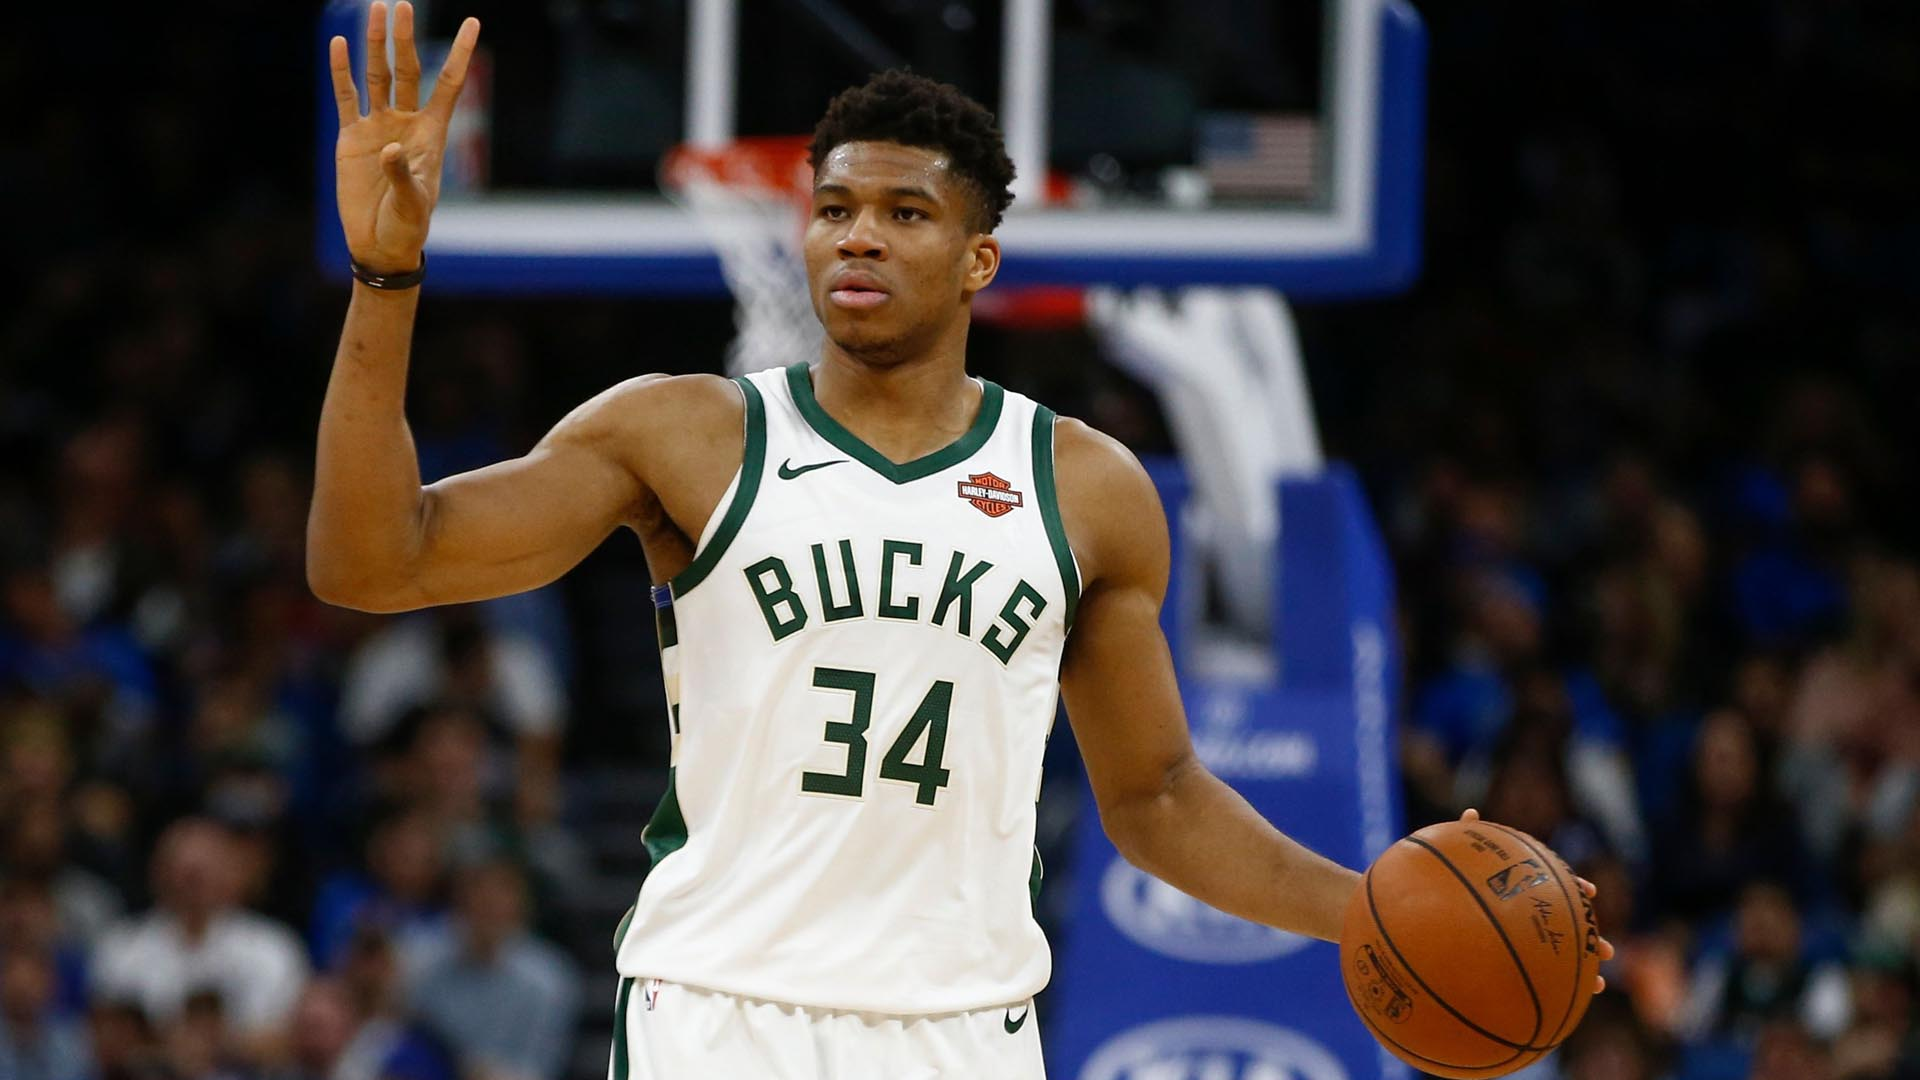 Purchase Giannis Antetokounmpo NBA Jerseys From Nike Through Lemoney